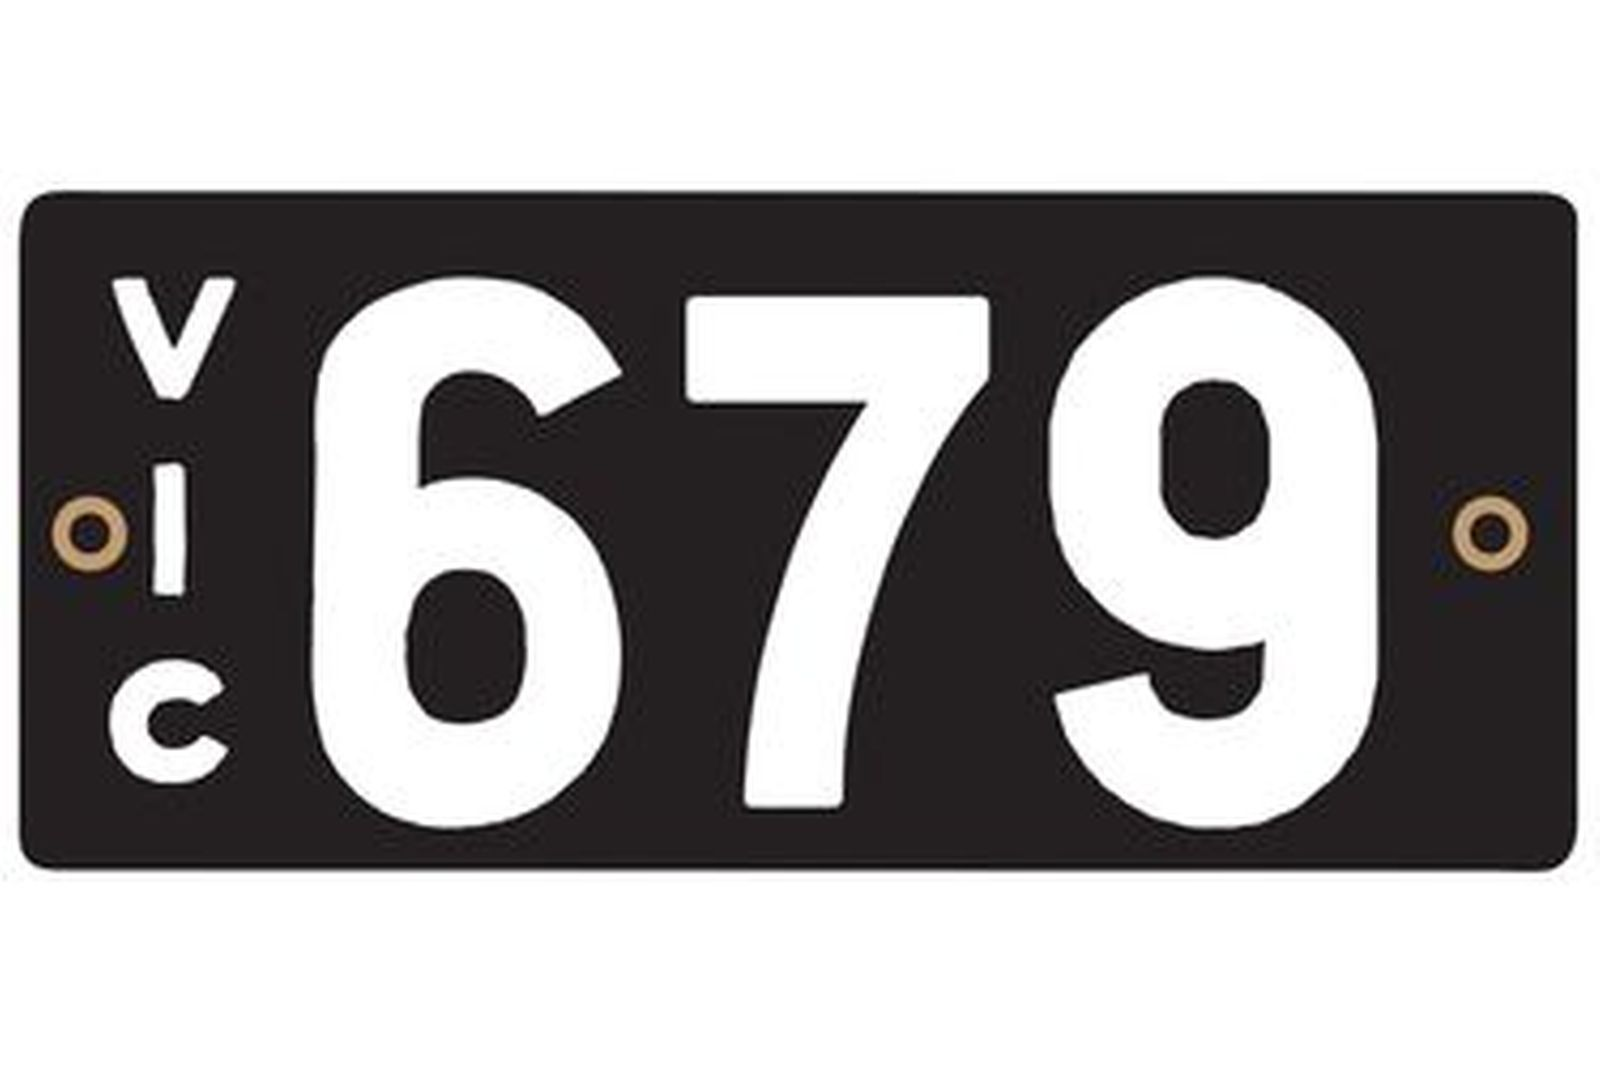 Victorian Heritage Plate '679'